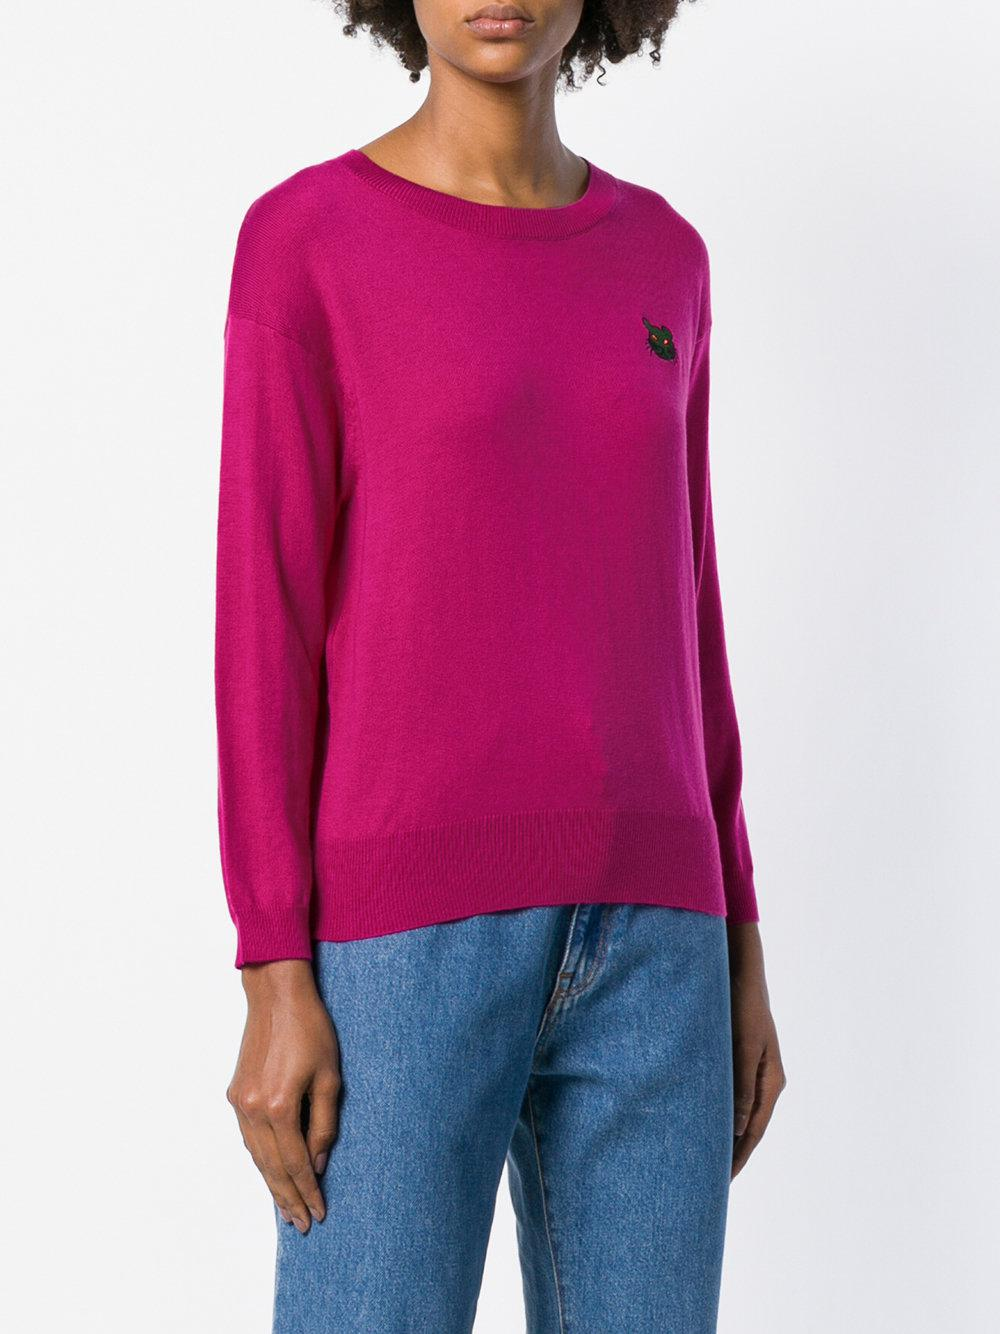 essentiel-antwerp-Pink-Purple-Embroidered-Cat-Sweater.jpeg 0a05c6a2e92